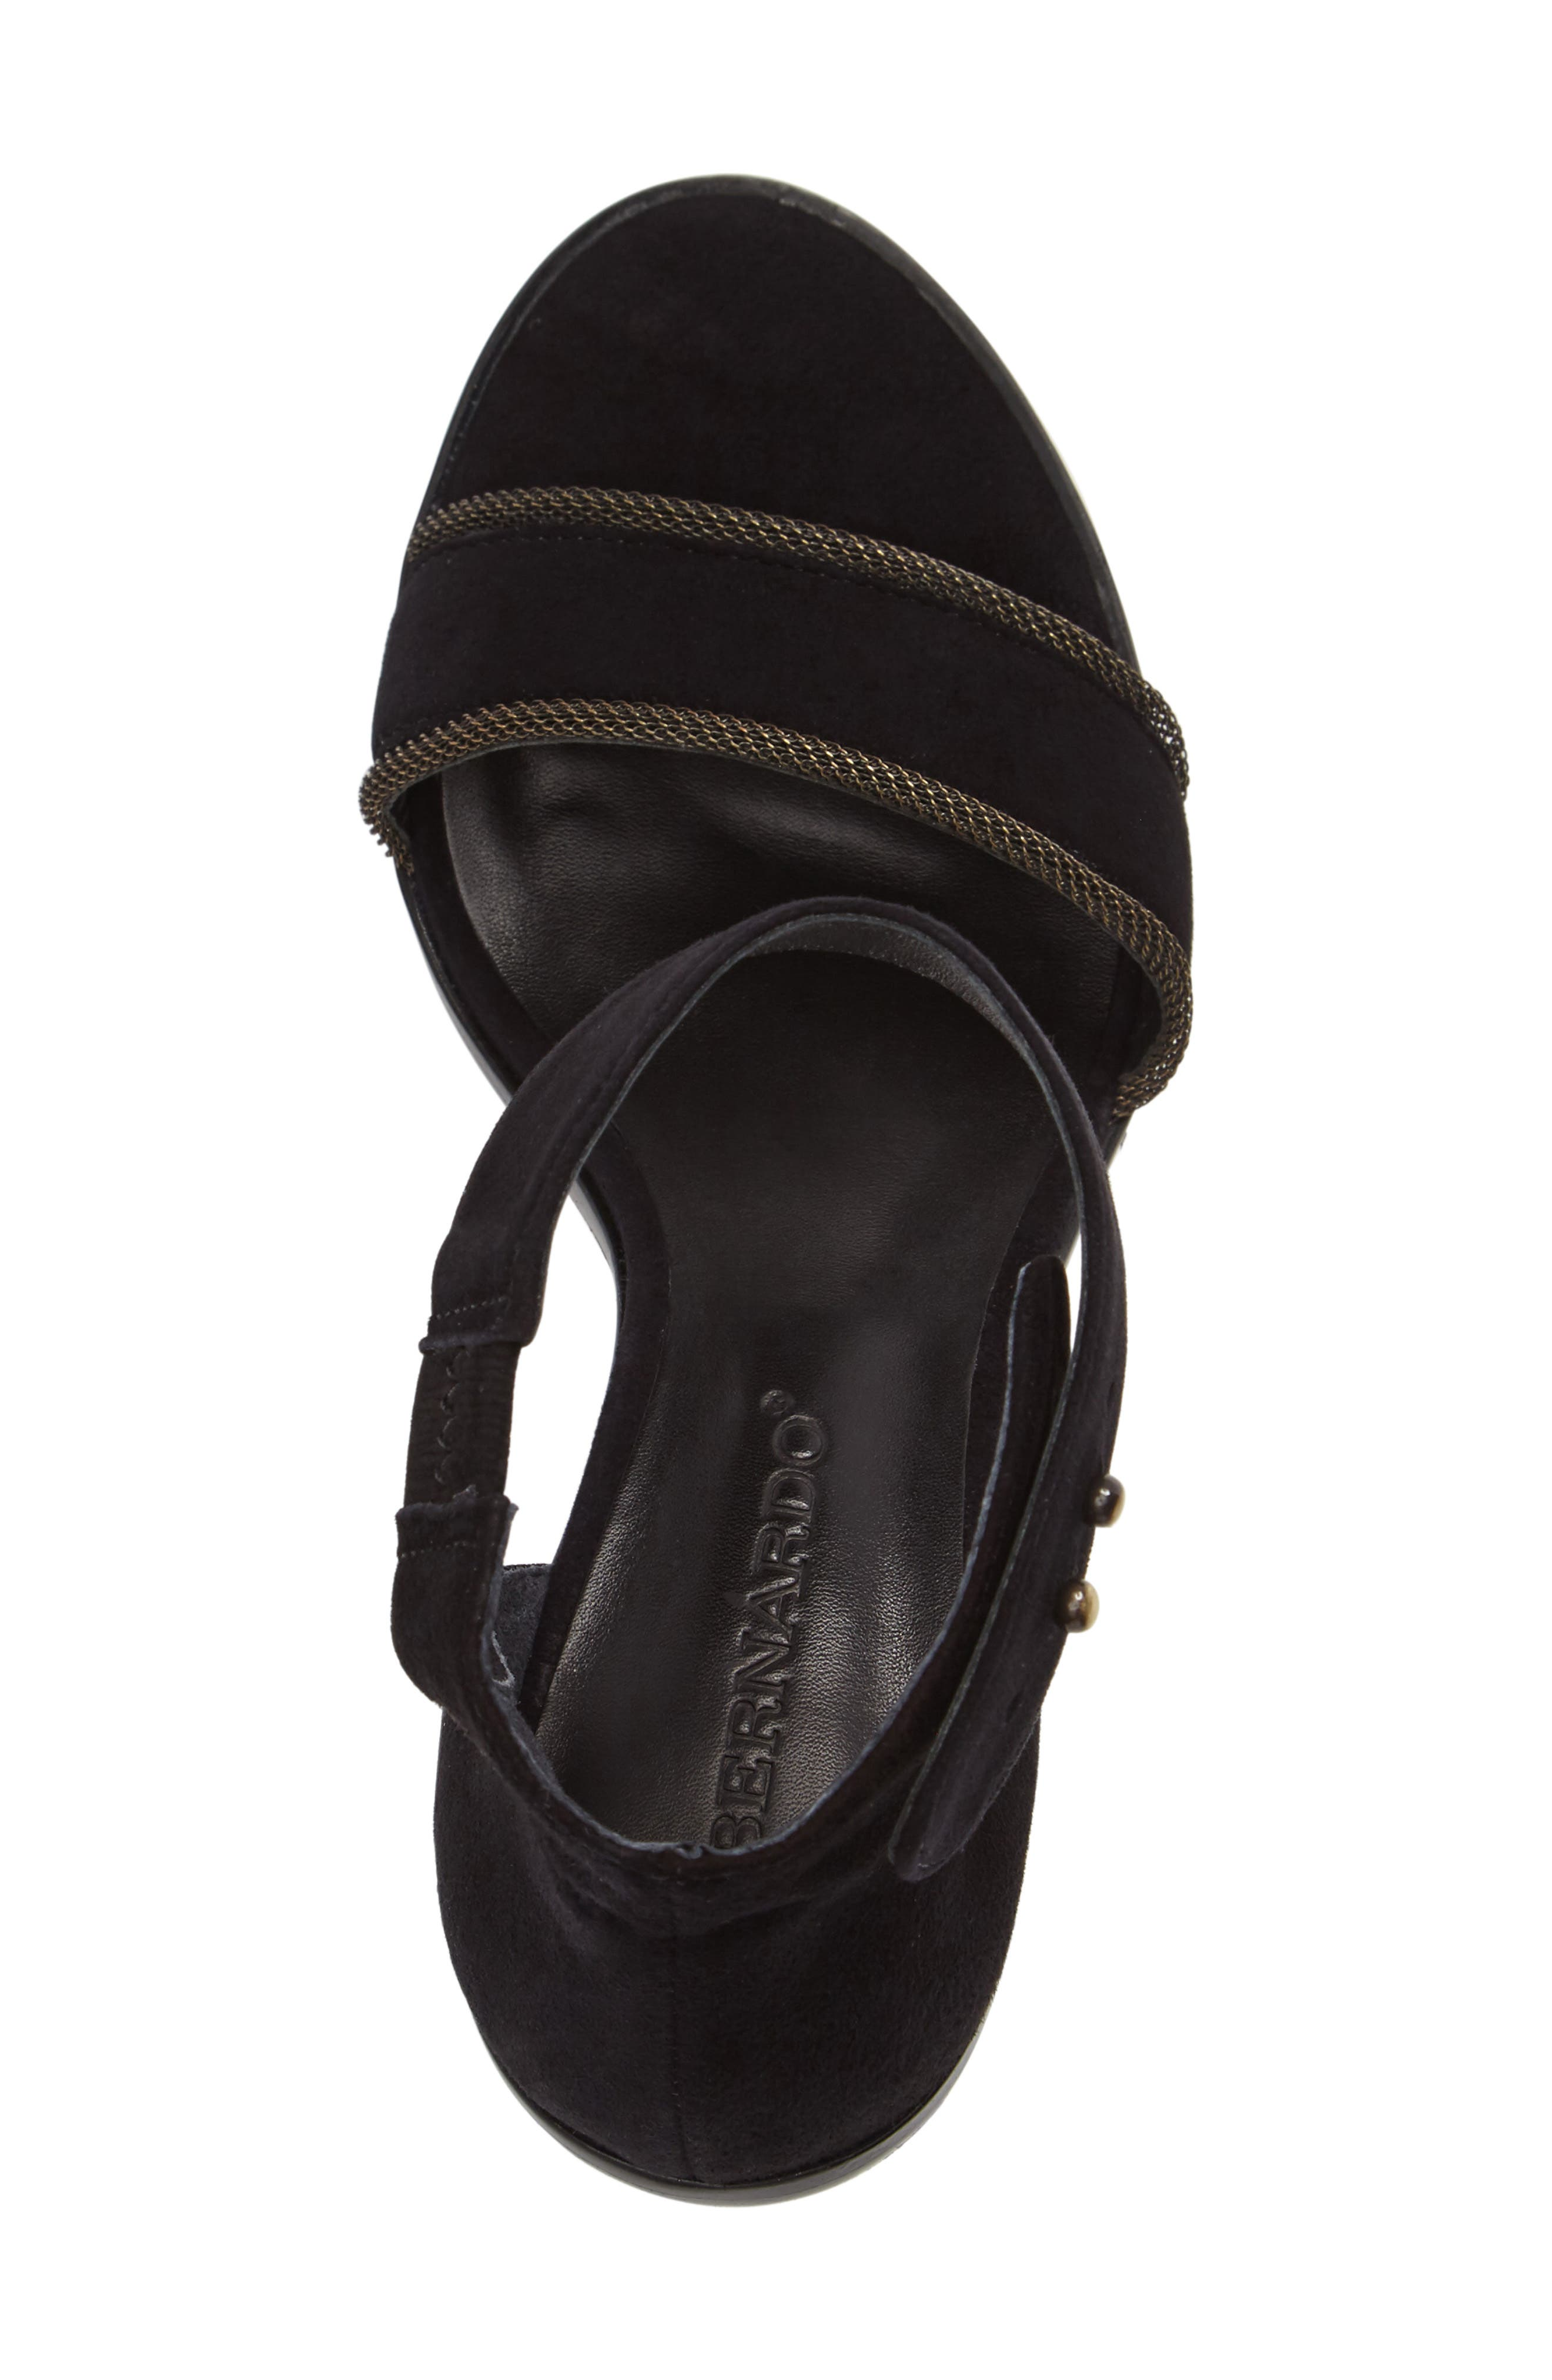 Bernardo Hayden Ankle Strap Sandal,                             Alternate thumbnail 3, color,                             001